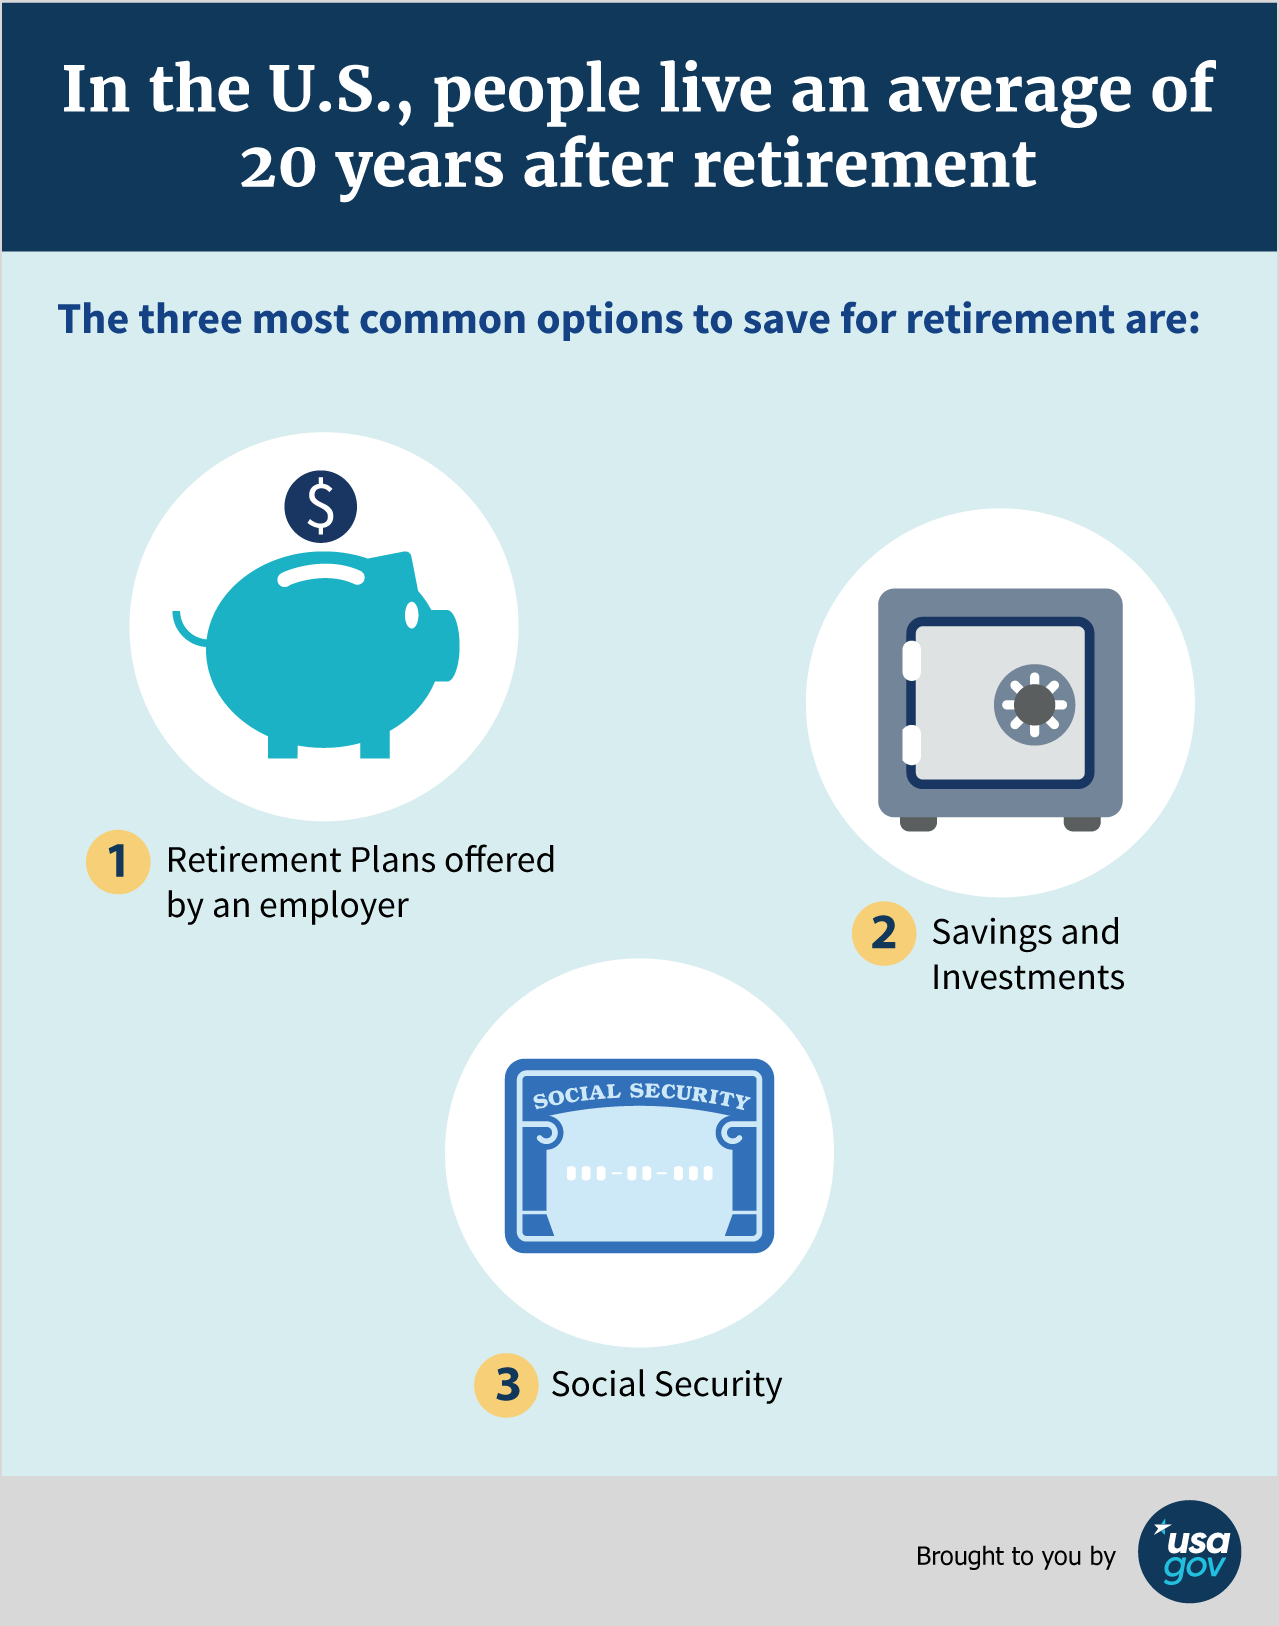 Infographic showing the ways people save for retirement in the U.S.